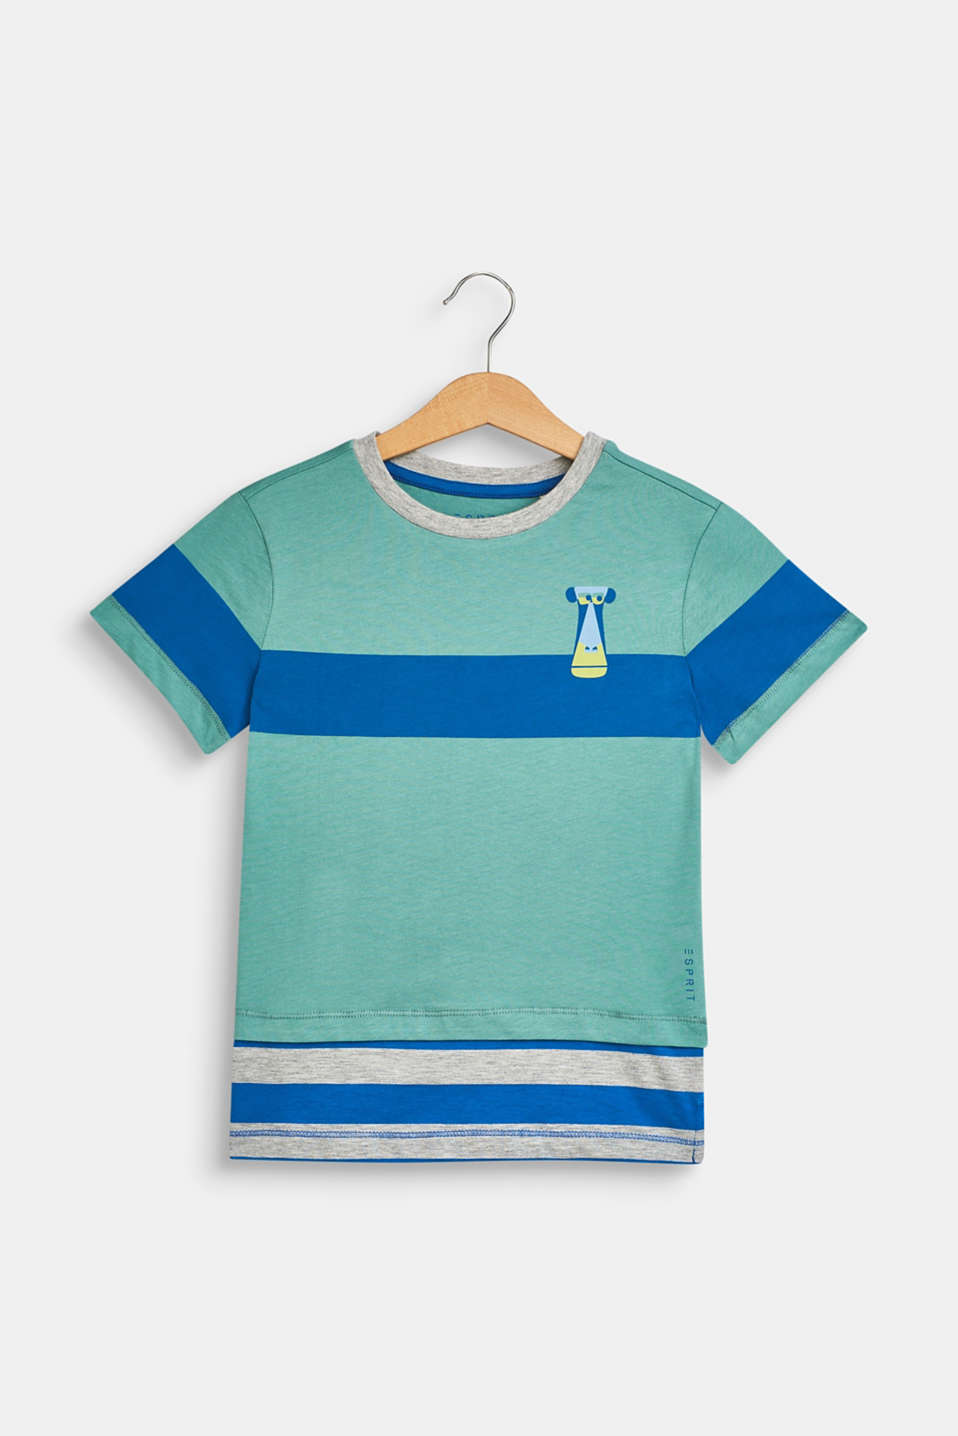 Esprit - 100% cotton T-shirt with a monkey print